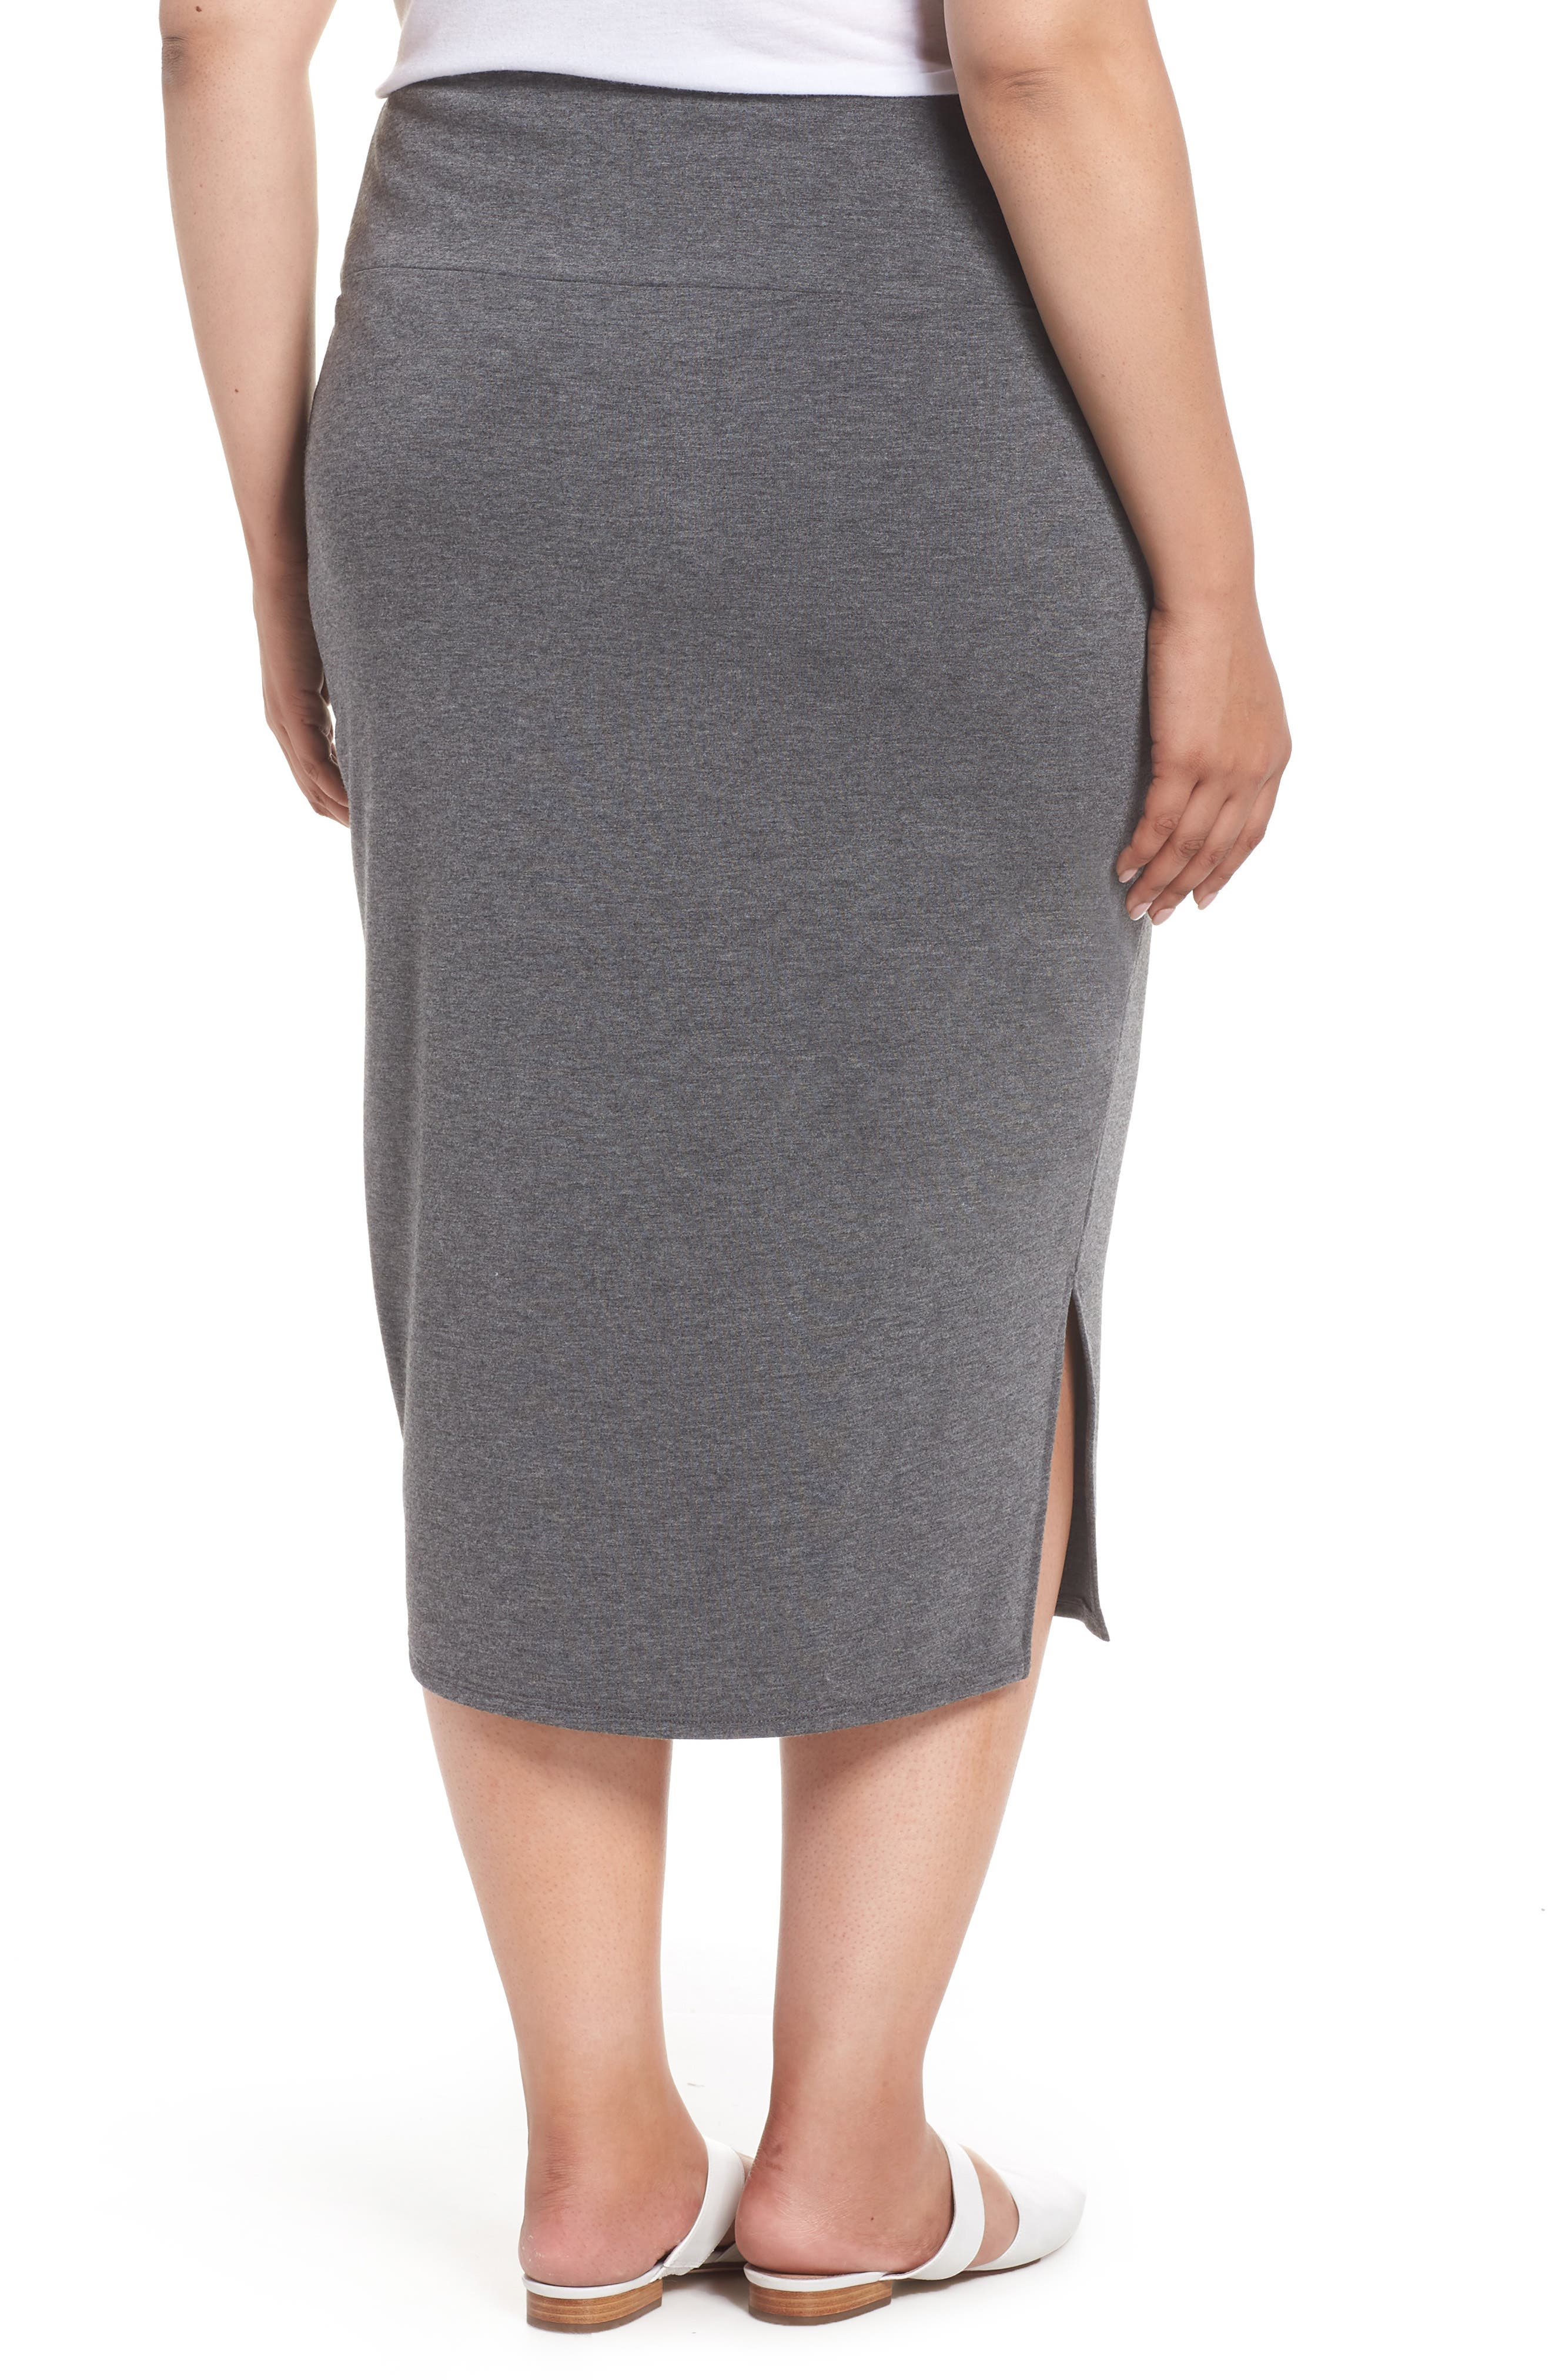 Off Duty Knit Skirt,                             Alternate thumbnail 2, color,                             GREY DARK CHARCOAL HEATHER